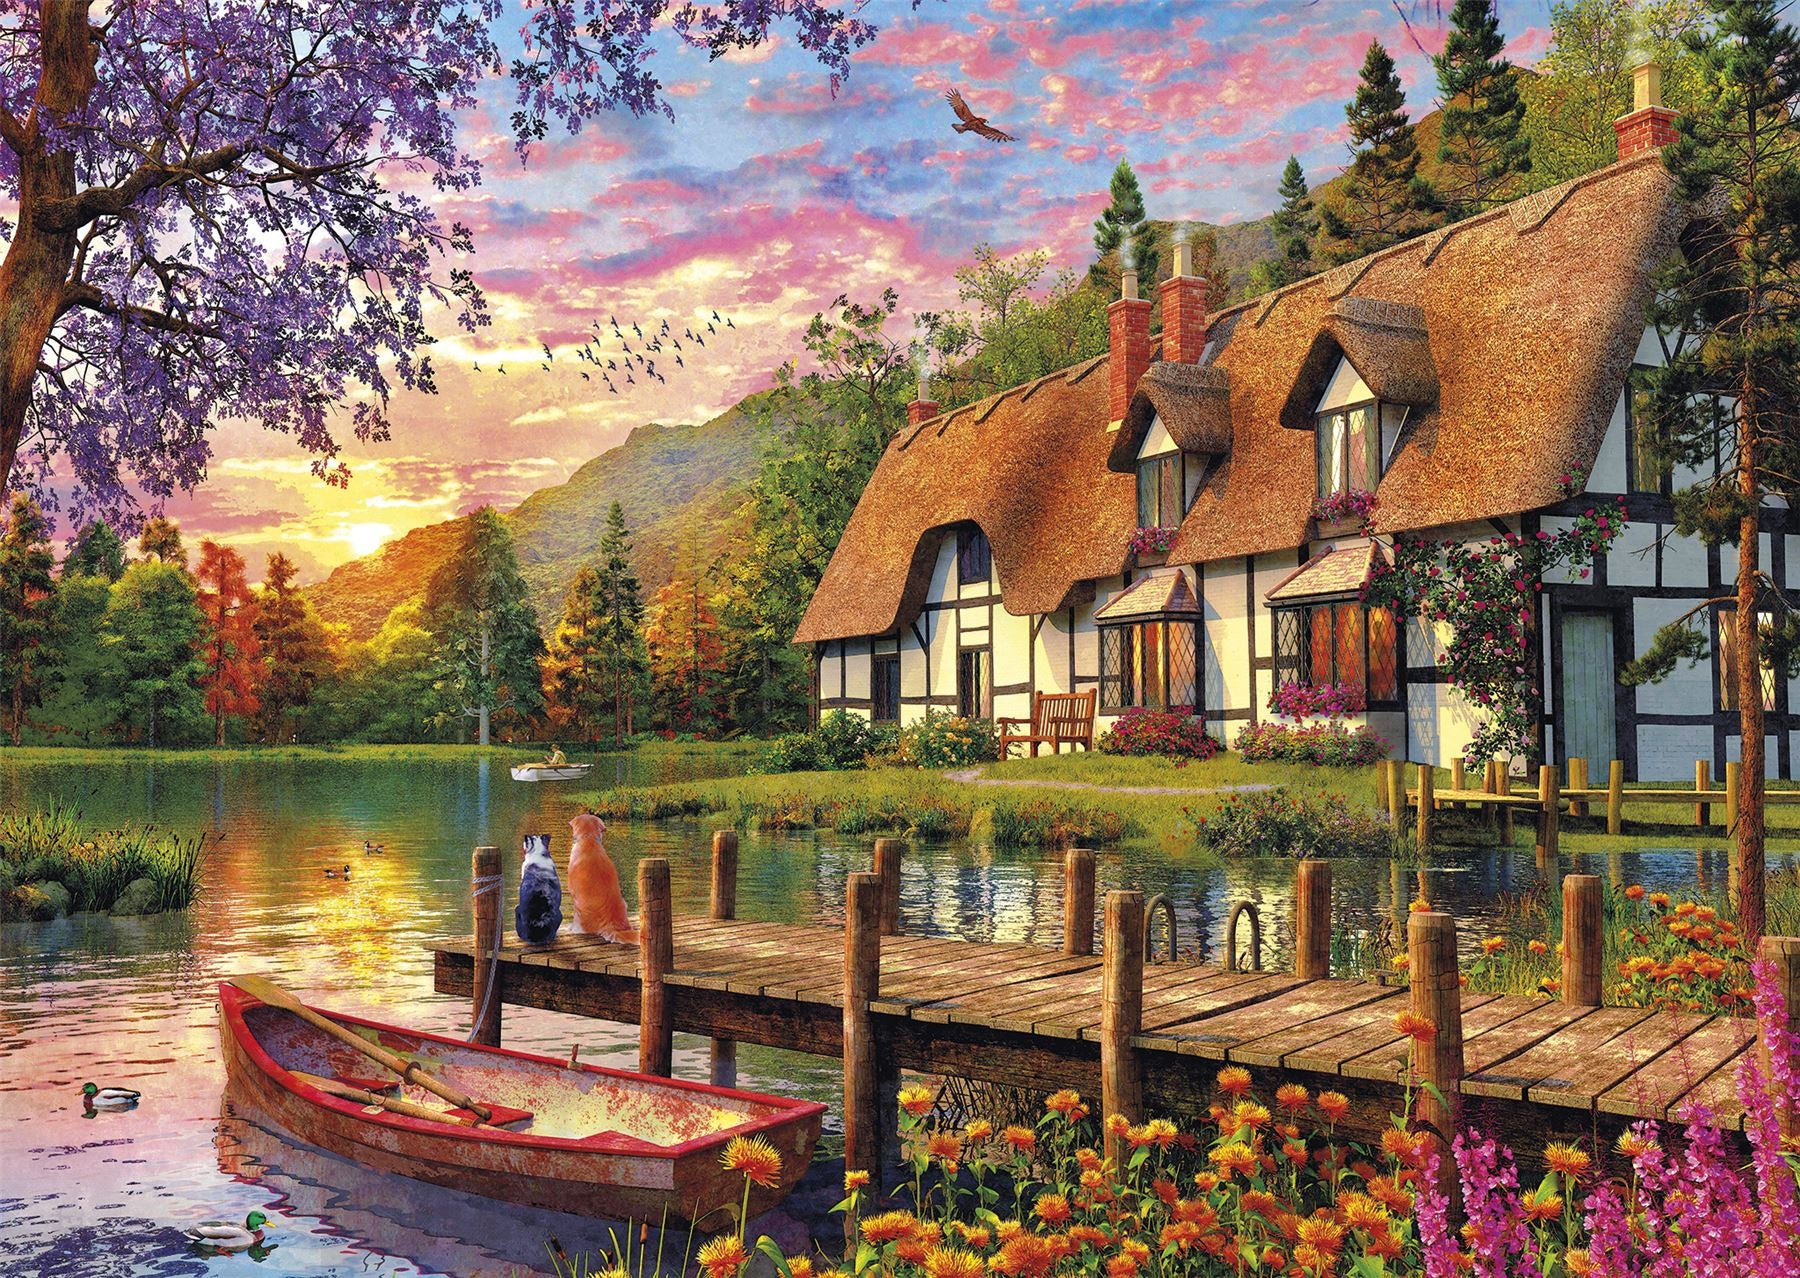 Lakeside Cottage Puzzle Relax Hobby Collect Coming Home 750 Piece Puzzle